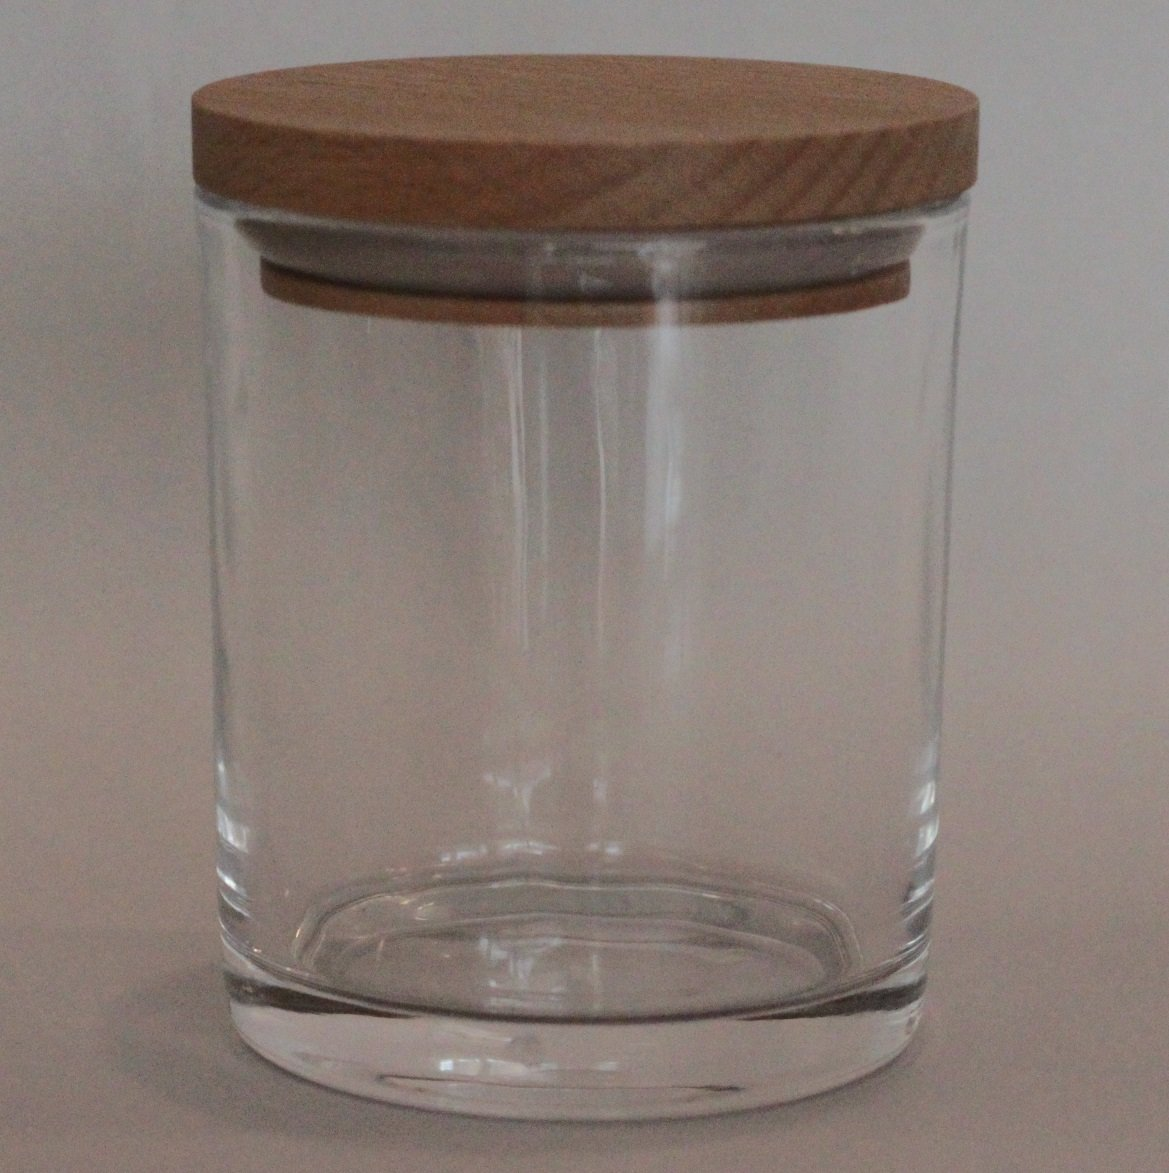 SPECIAL 12 Medium-Large Candle Glass - Clear/Beech